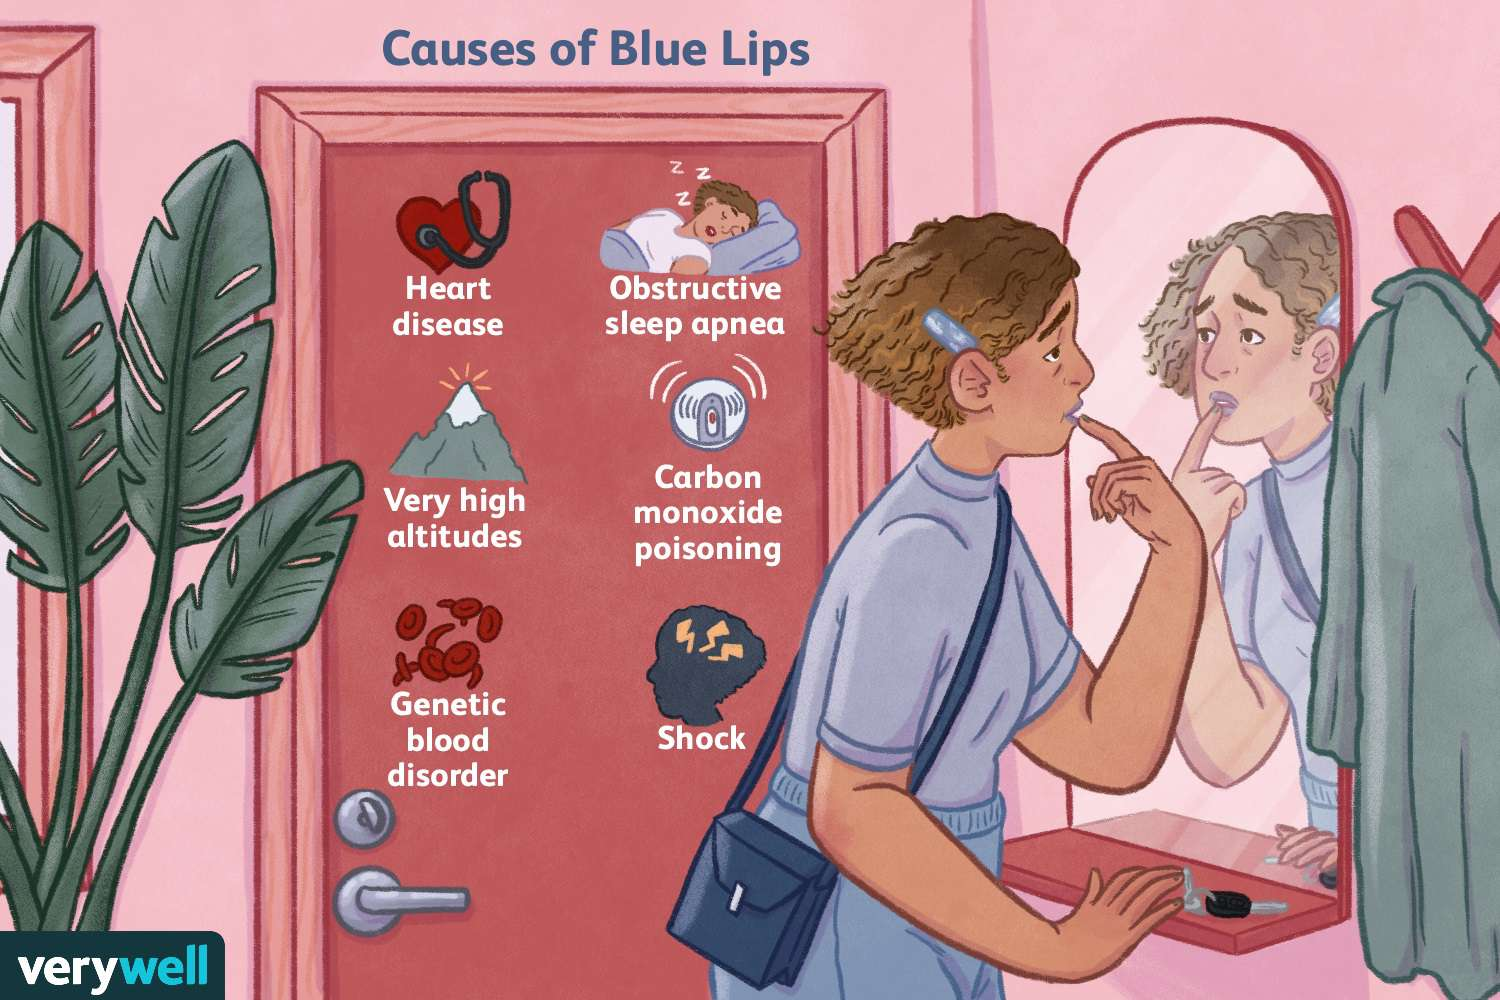 Causes of Blue Lips